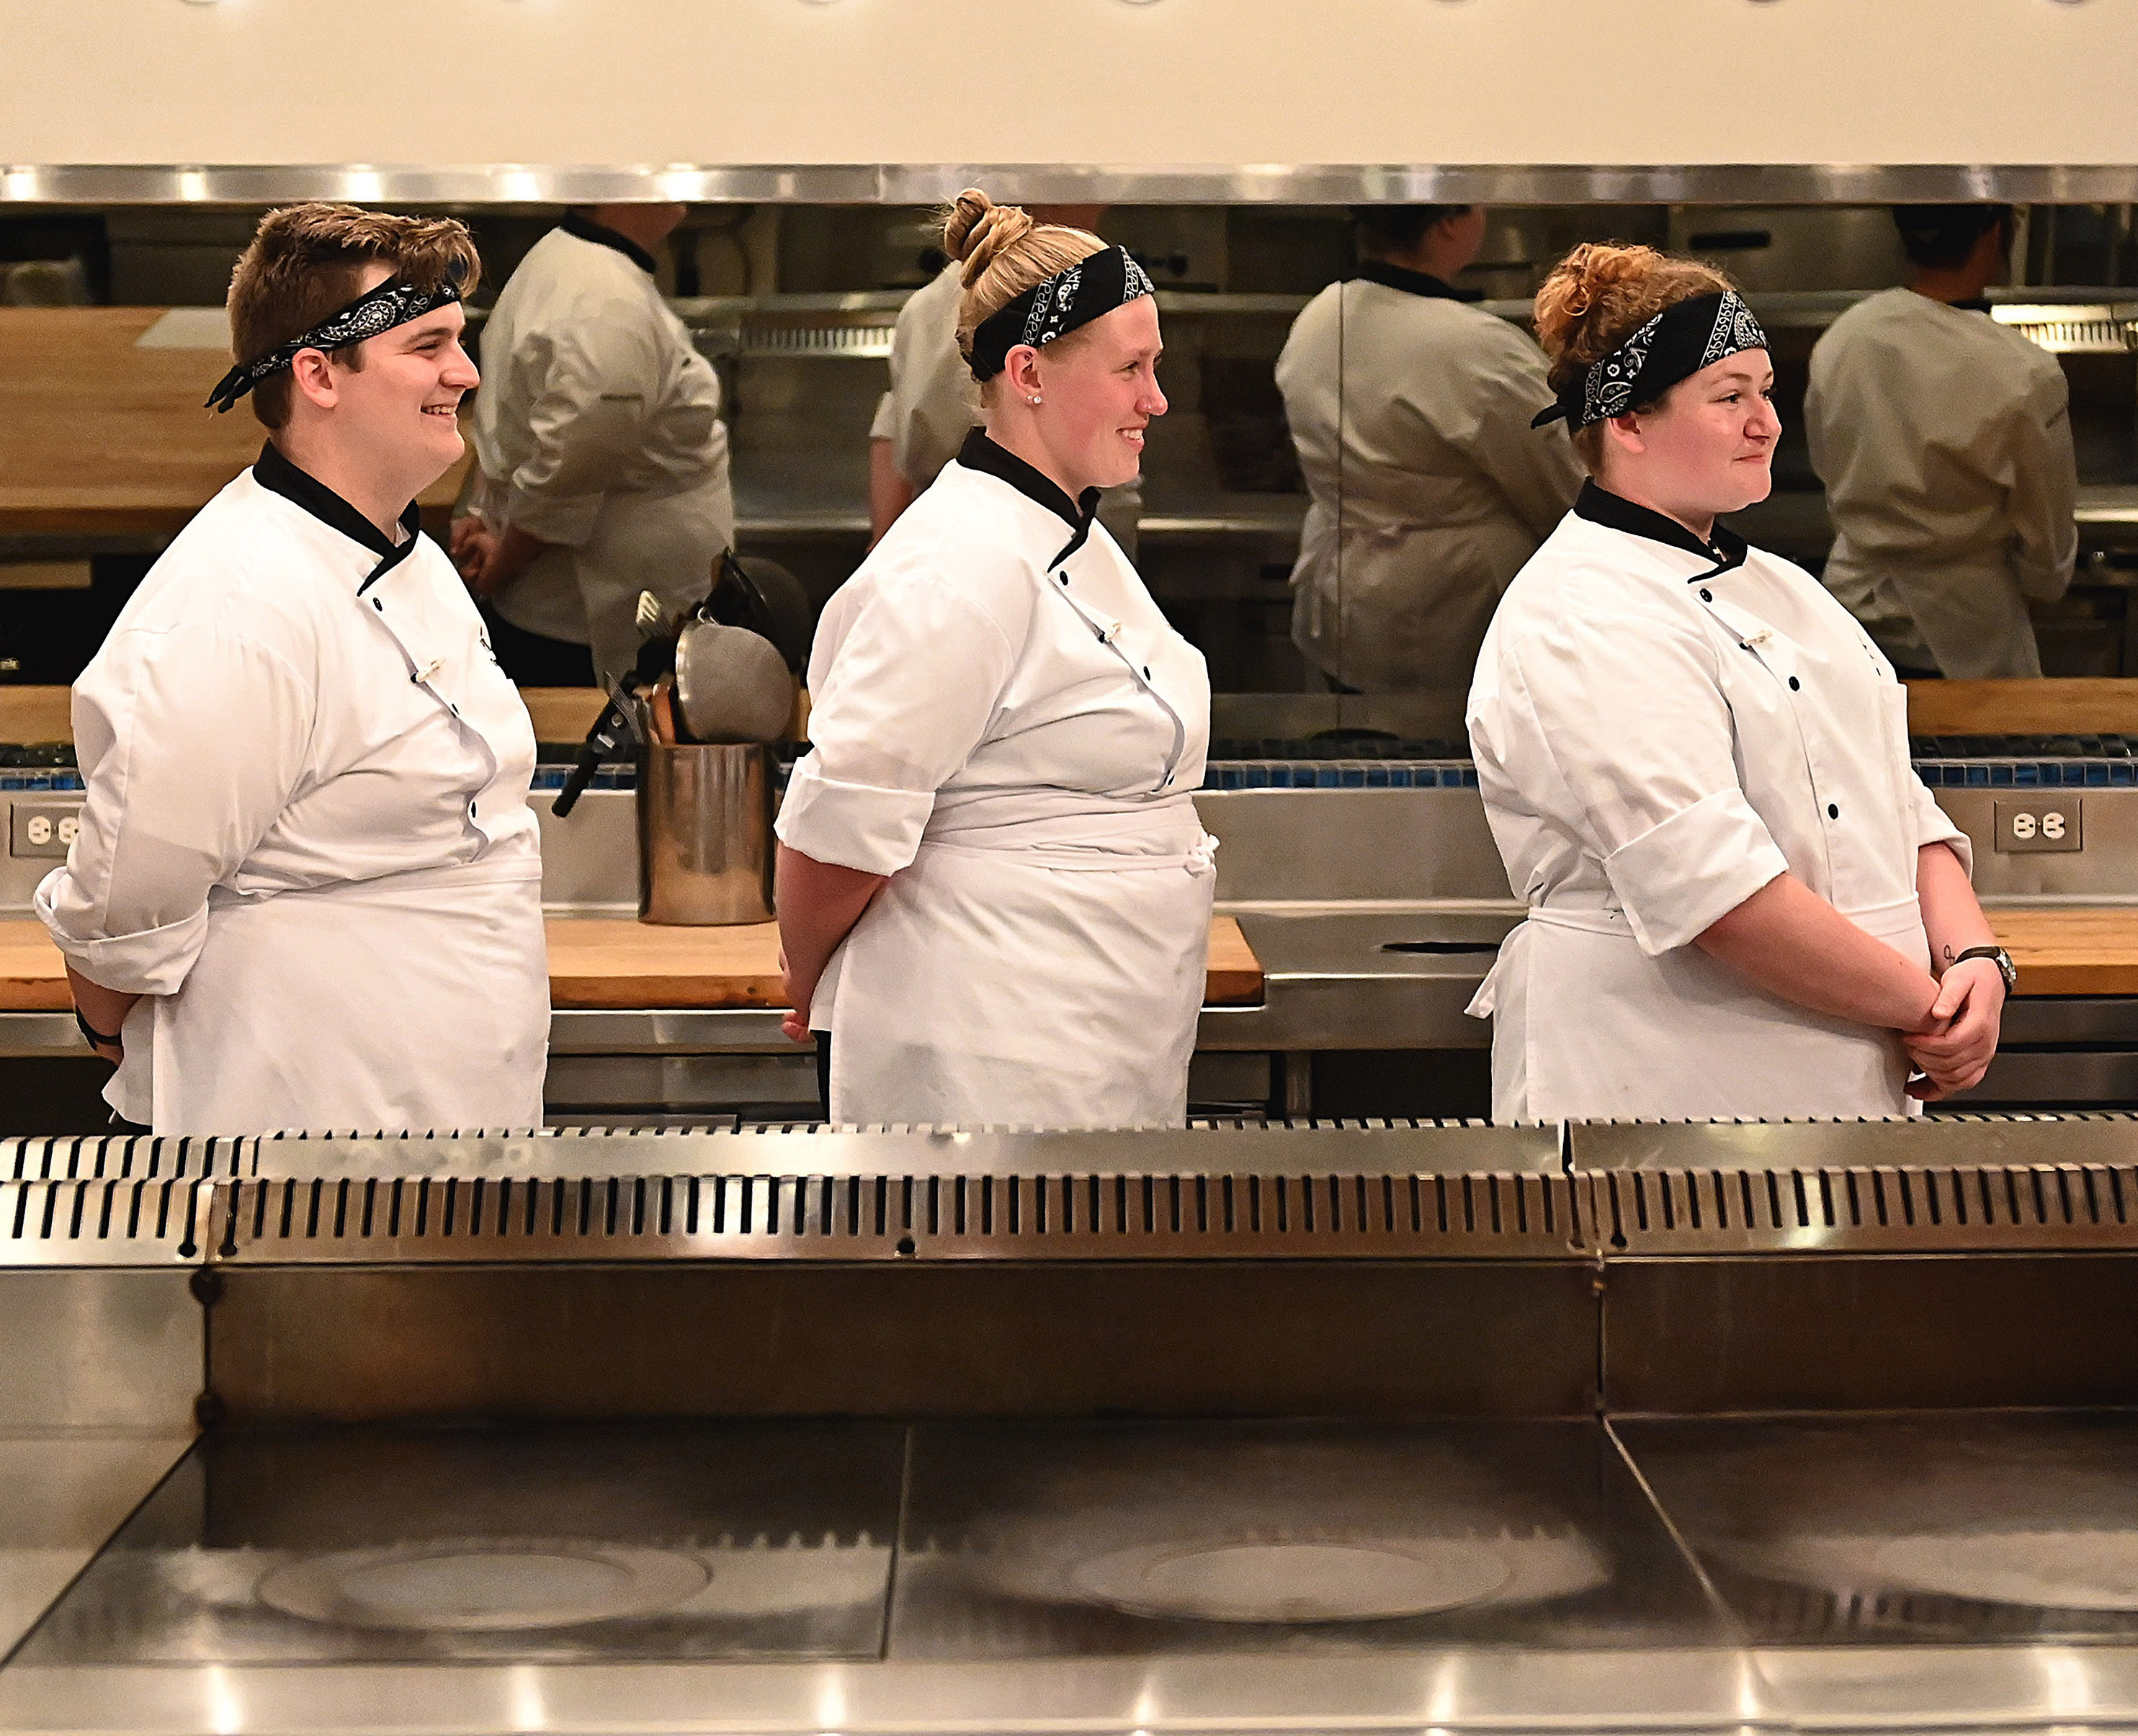 Three chefs, a man and two women, in white jackets face right.